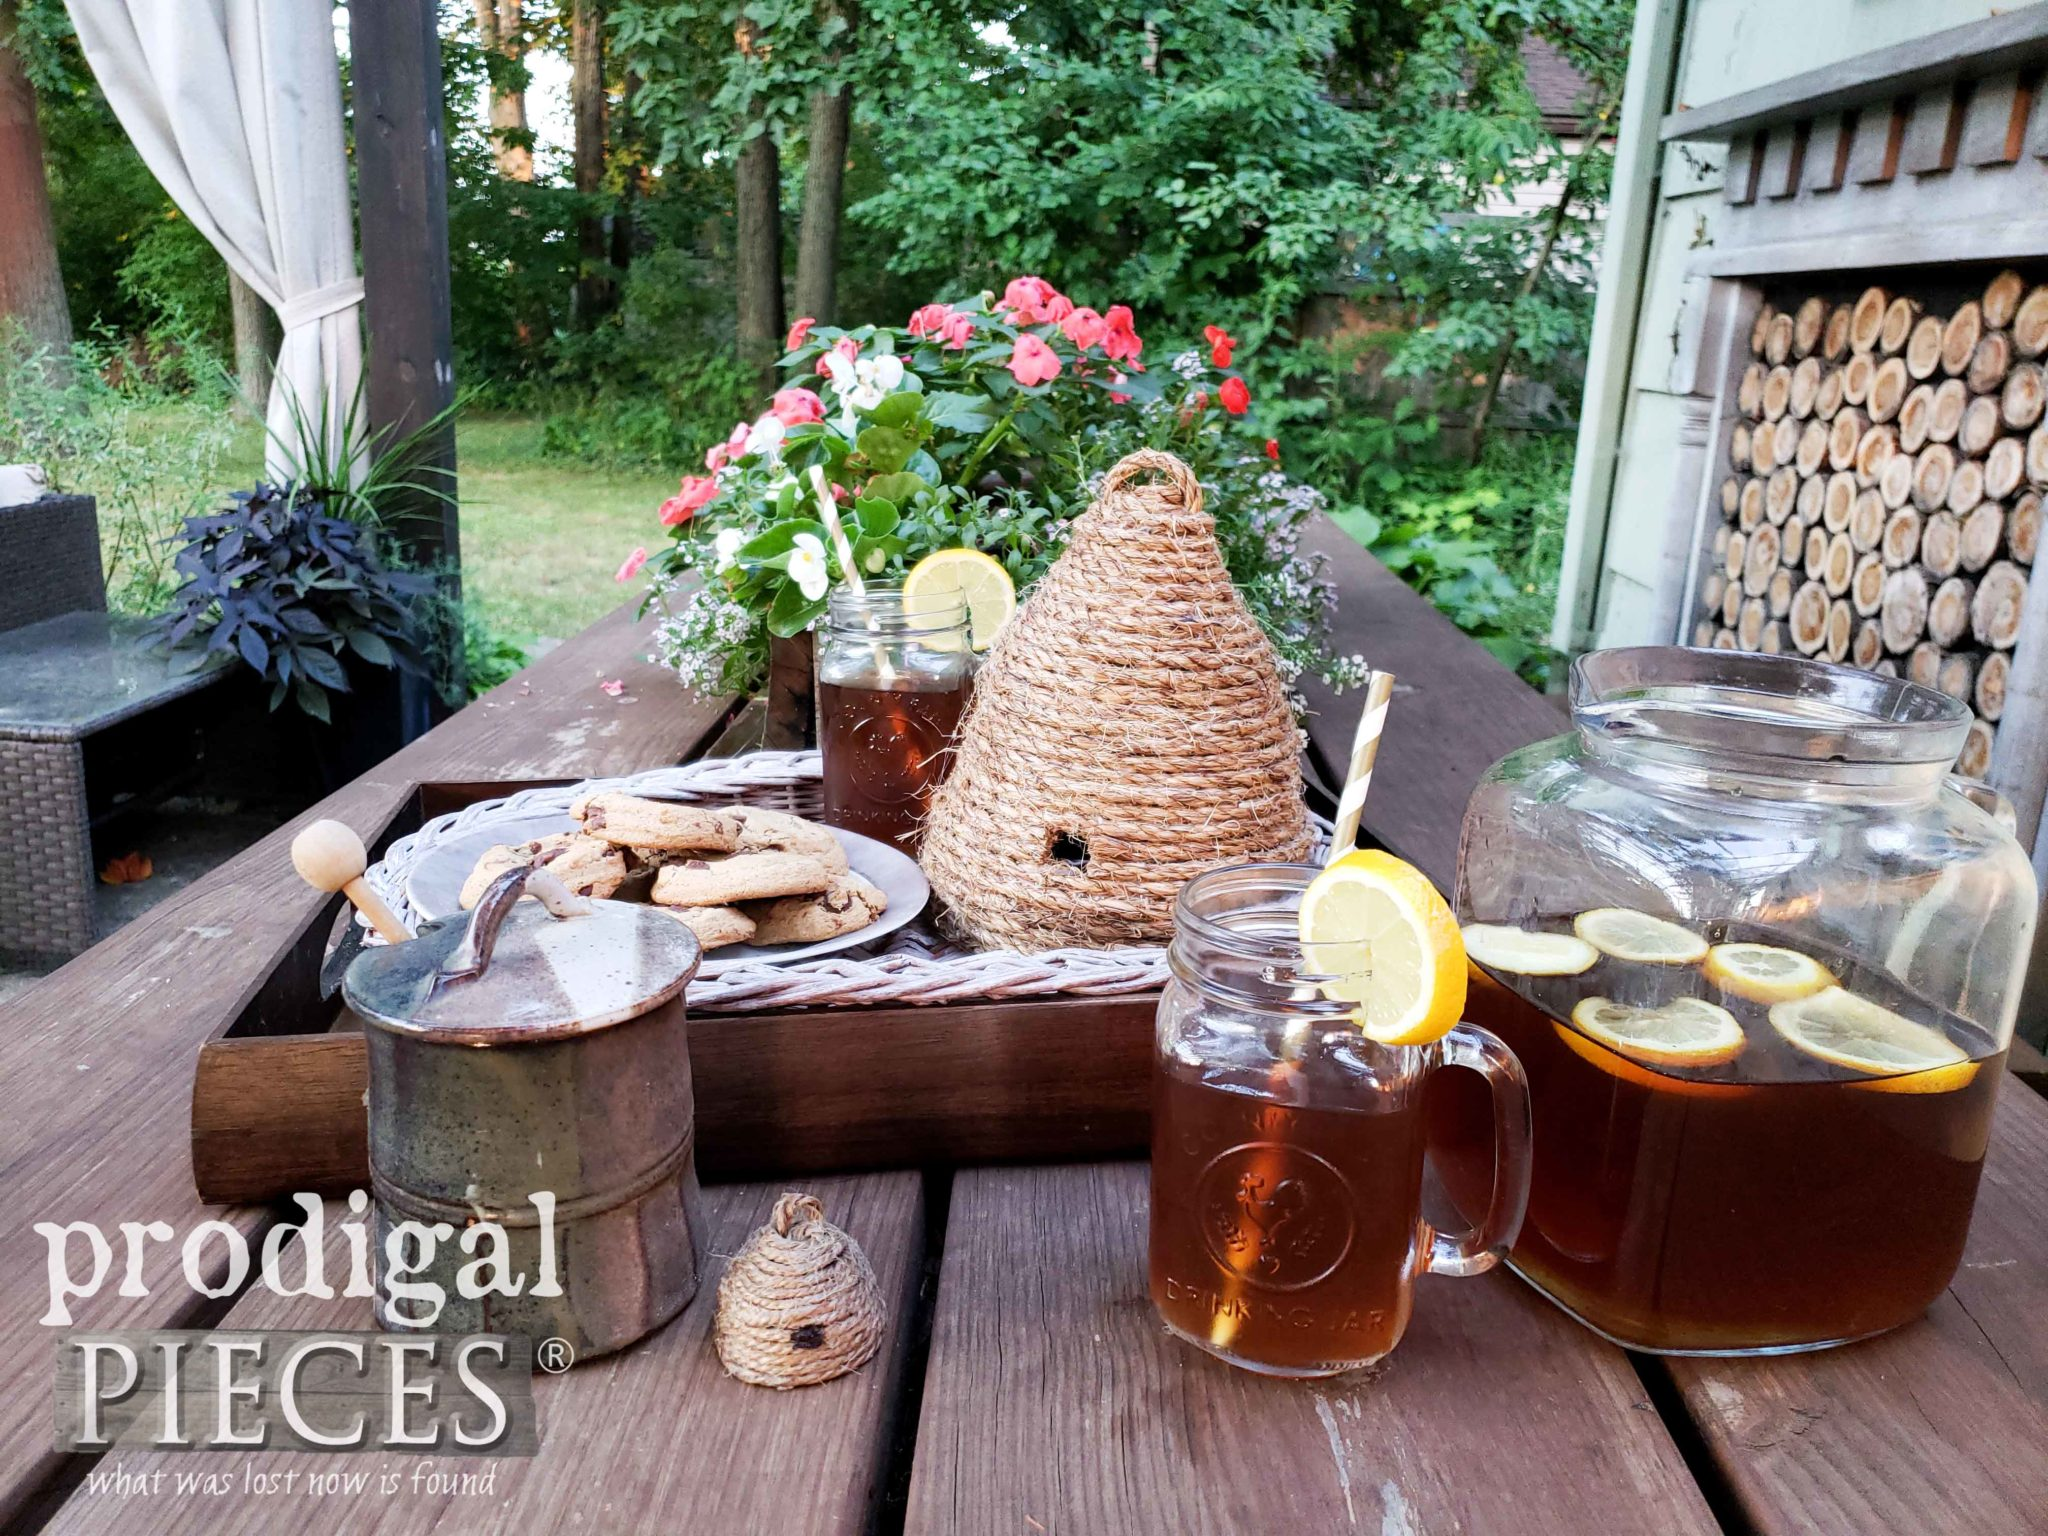 DIY Bee Skep for Indoor and Outdoor Decor by Prodigal Pieces | prodigalpieces.com